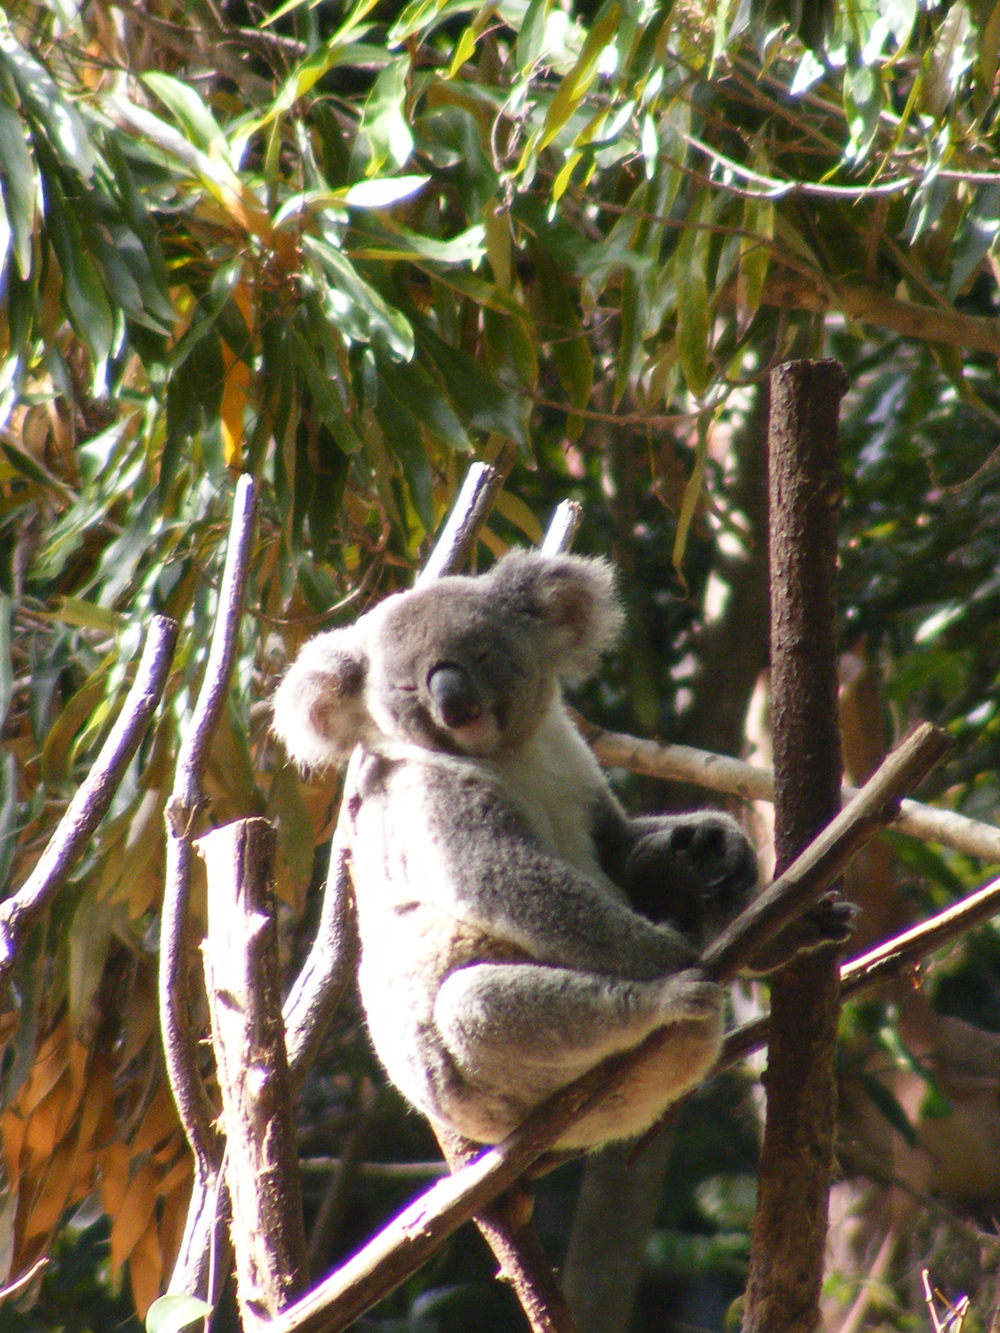 Koala at the Currumbin Sanctuary